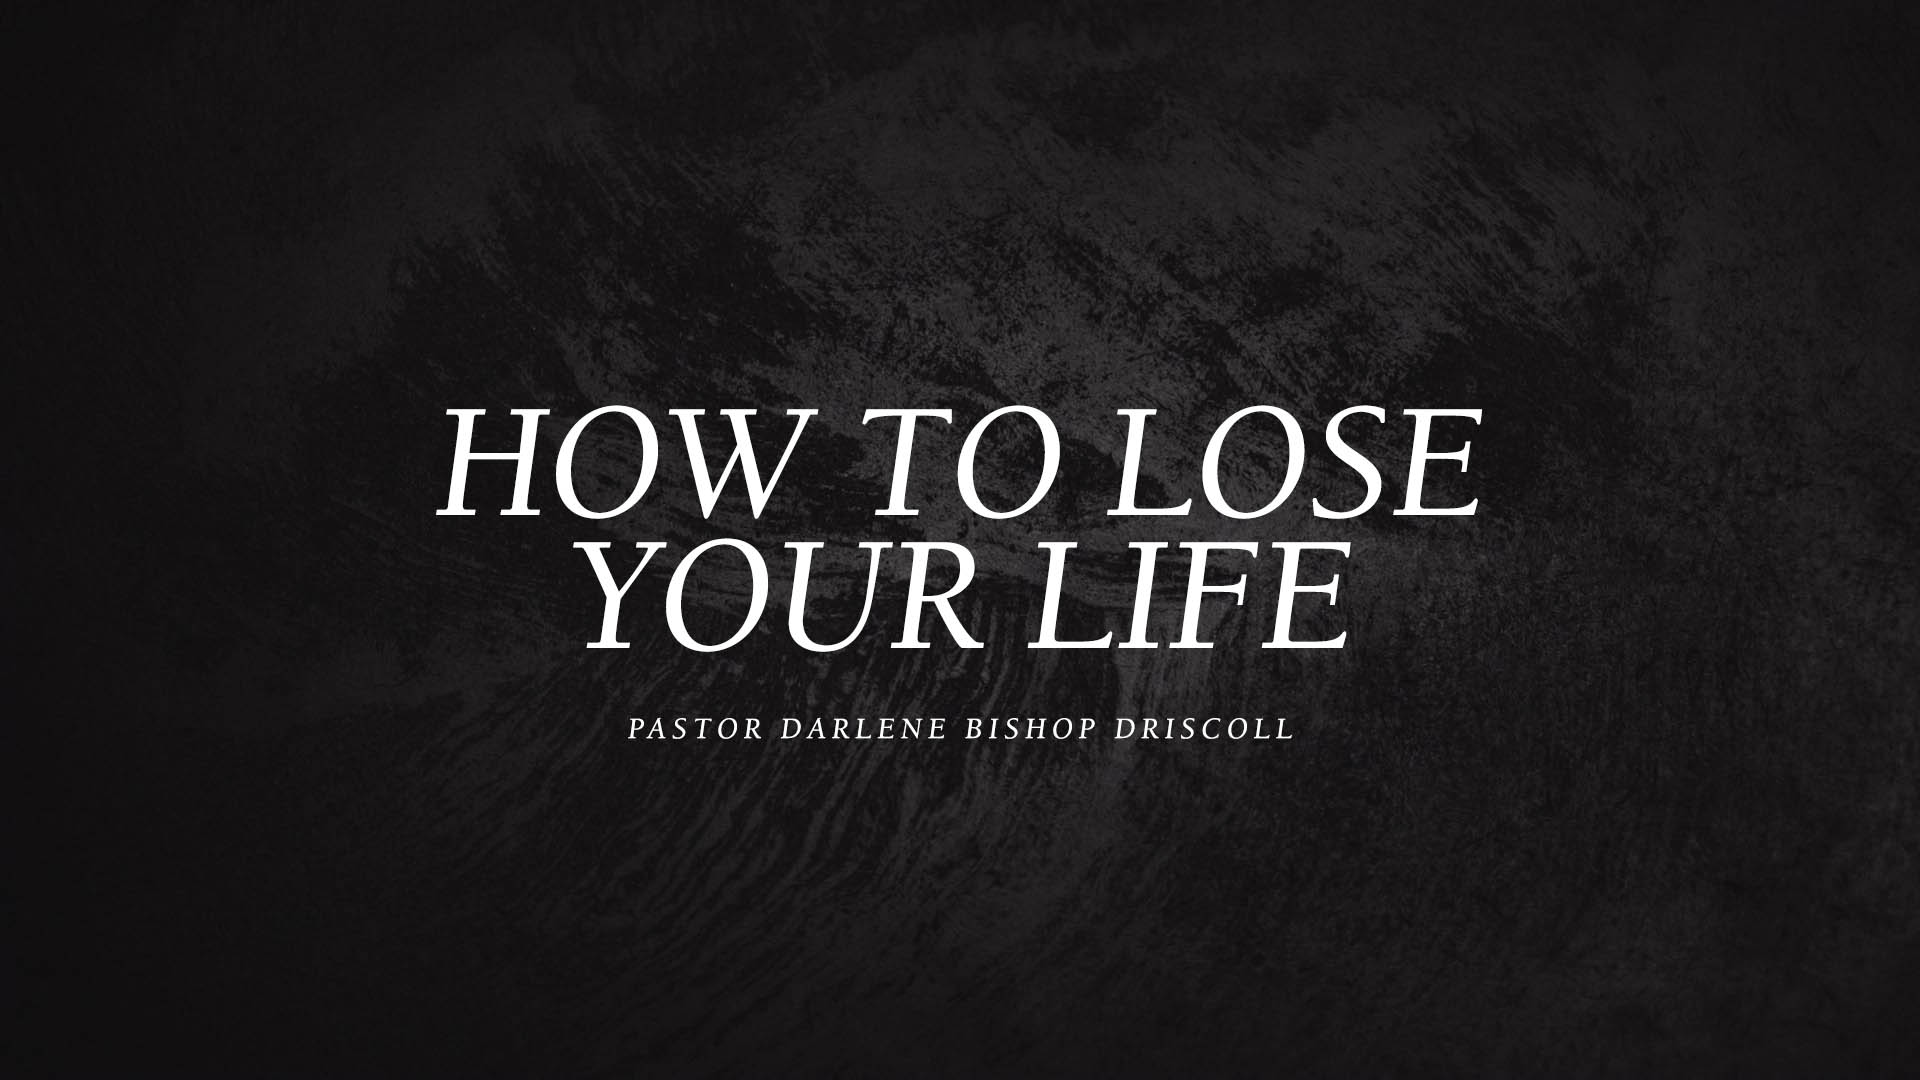 SRC 1-16-18 DBD How To Lose Your Life